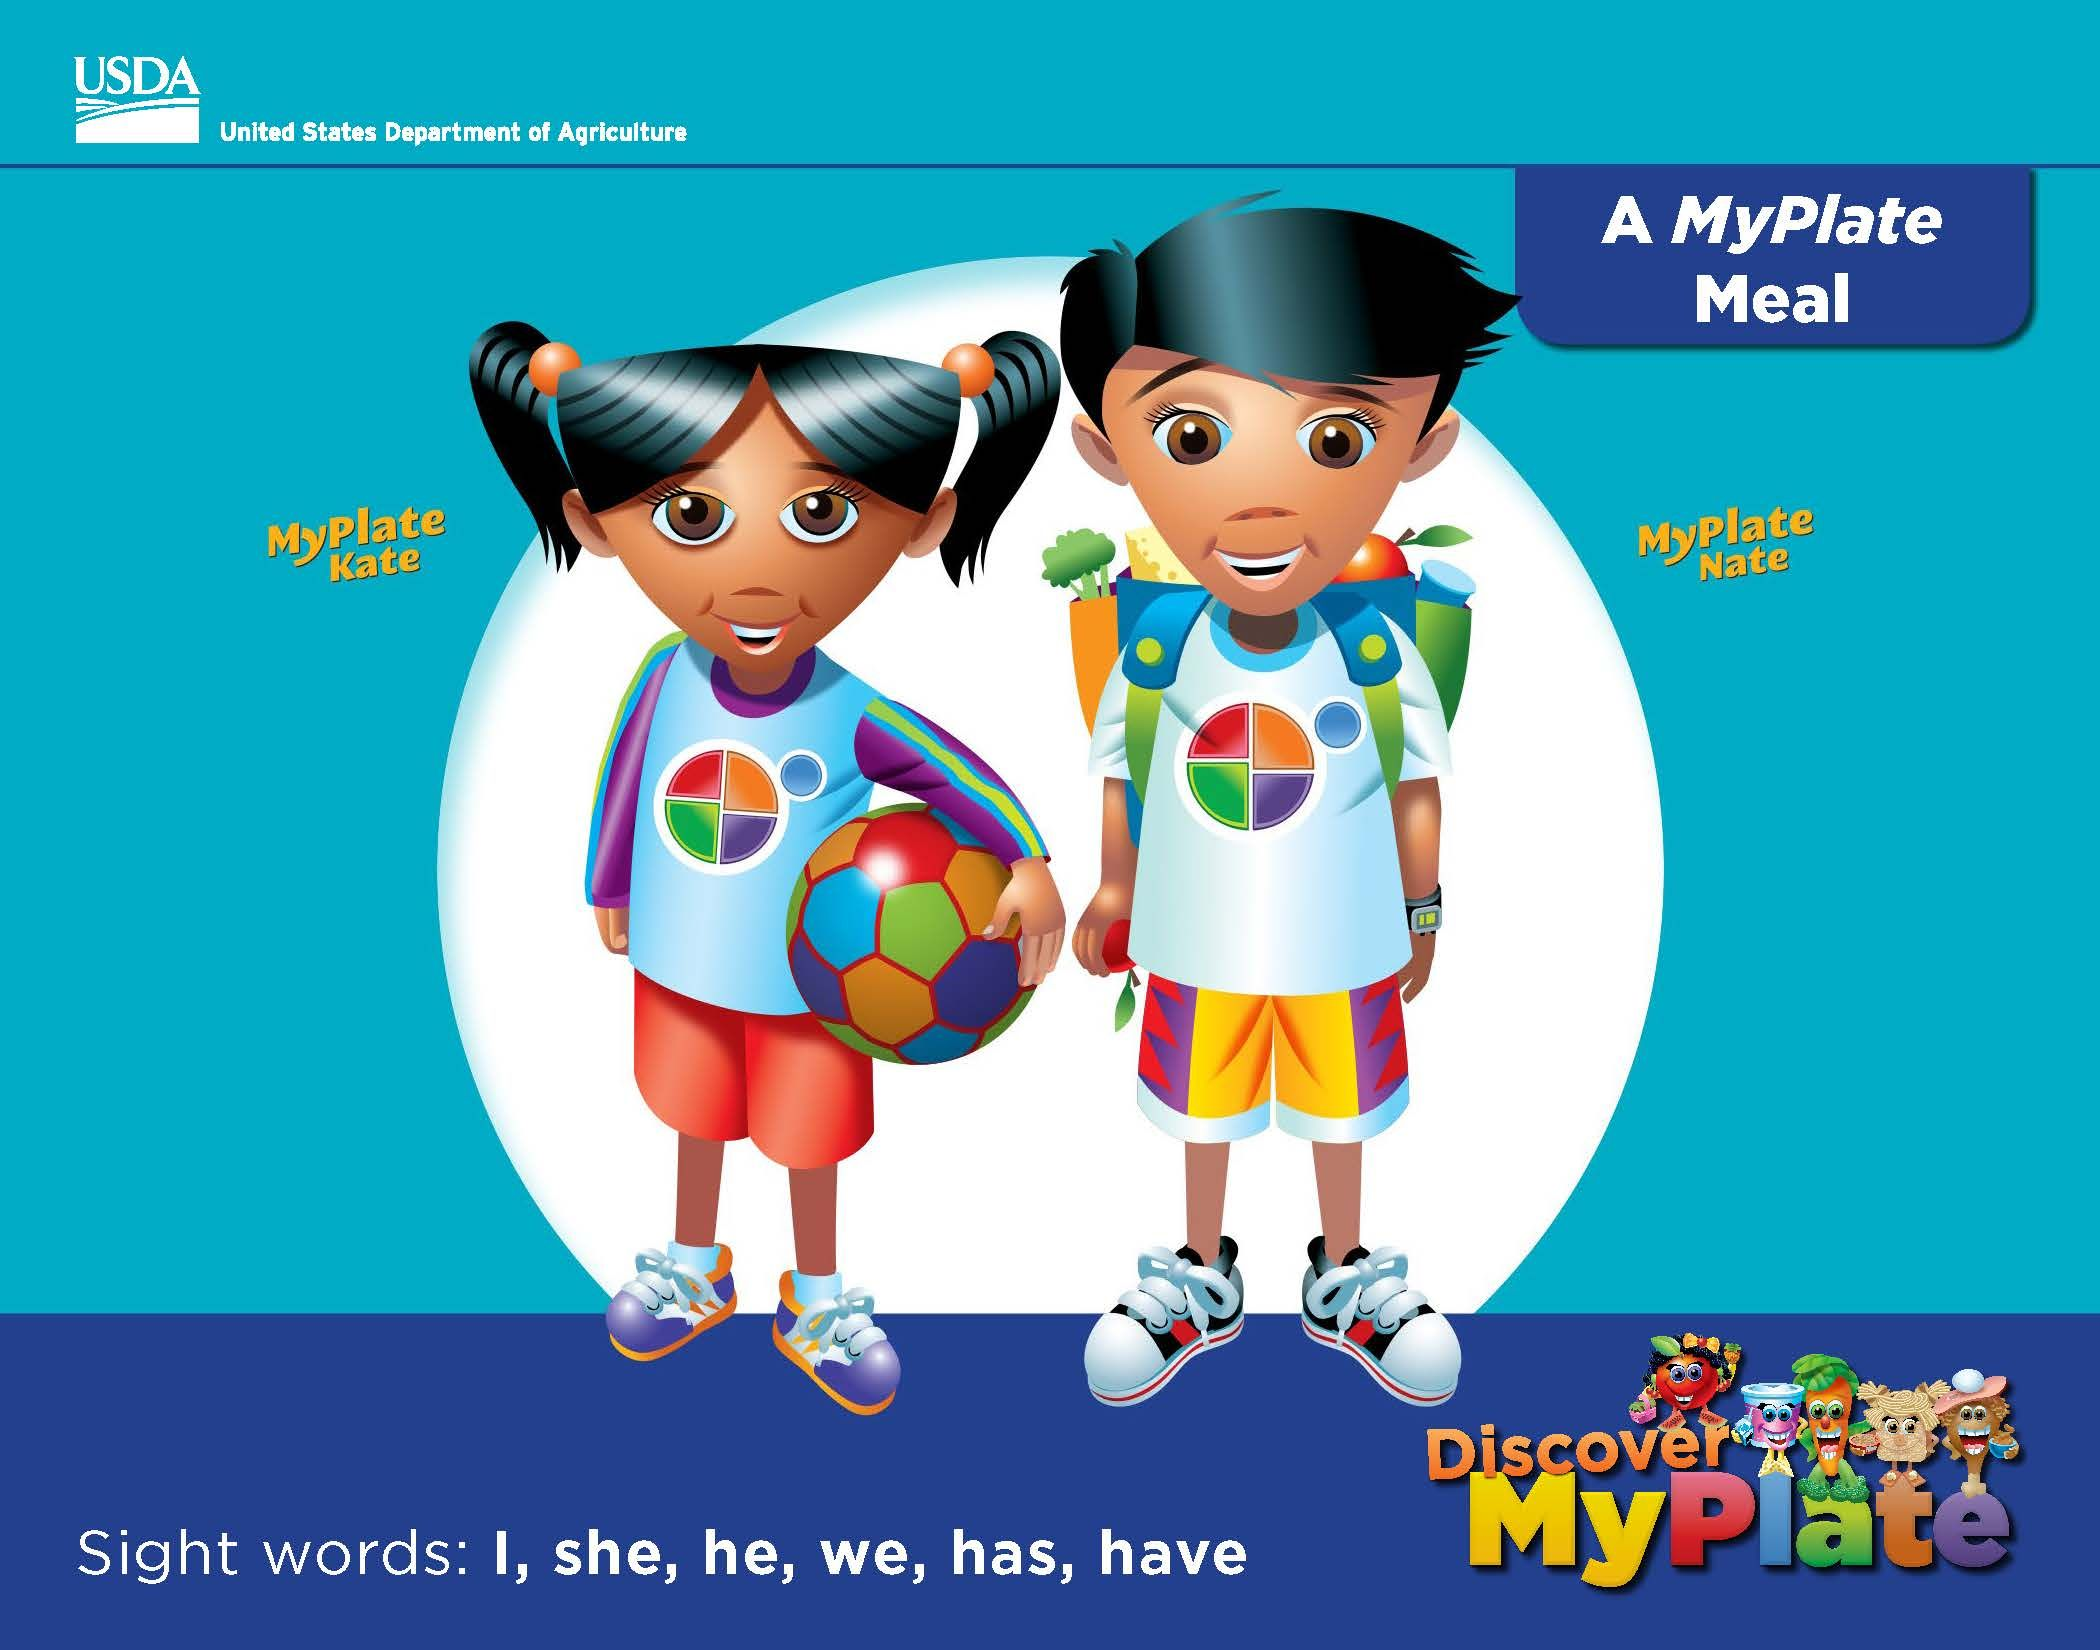 A Myplate Meal Is A Story For Beginning Readers In Kindergarten There Are Also 5 Other Stories